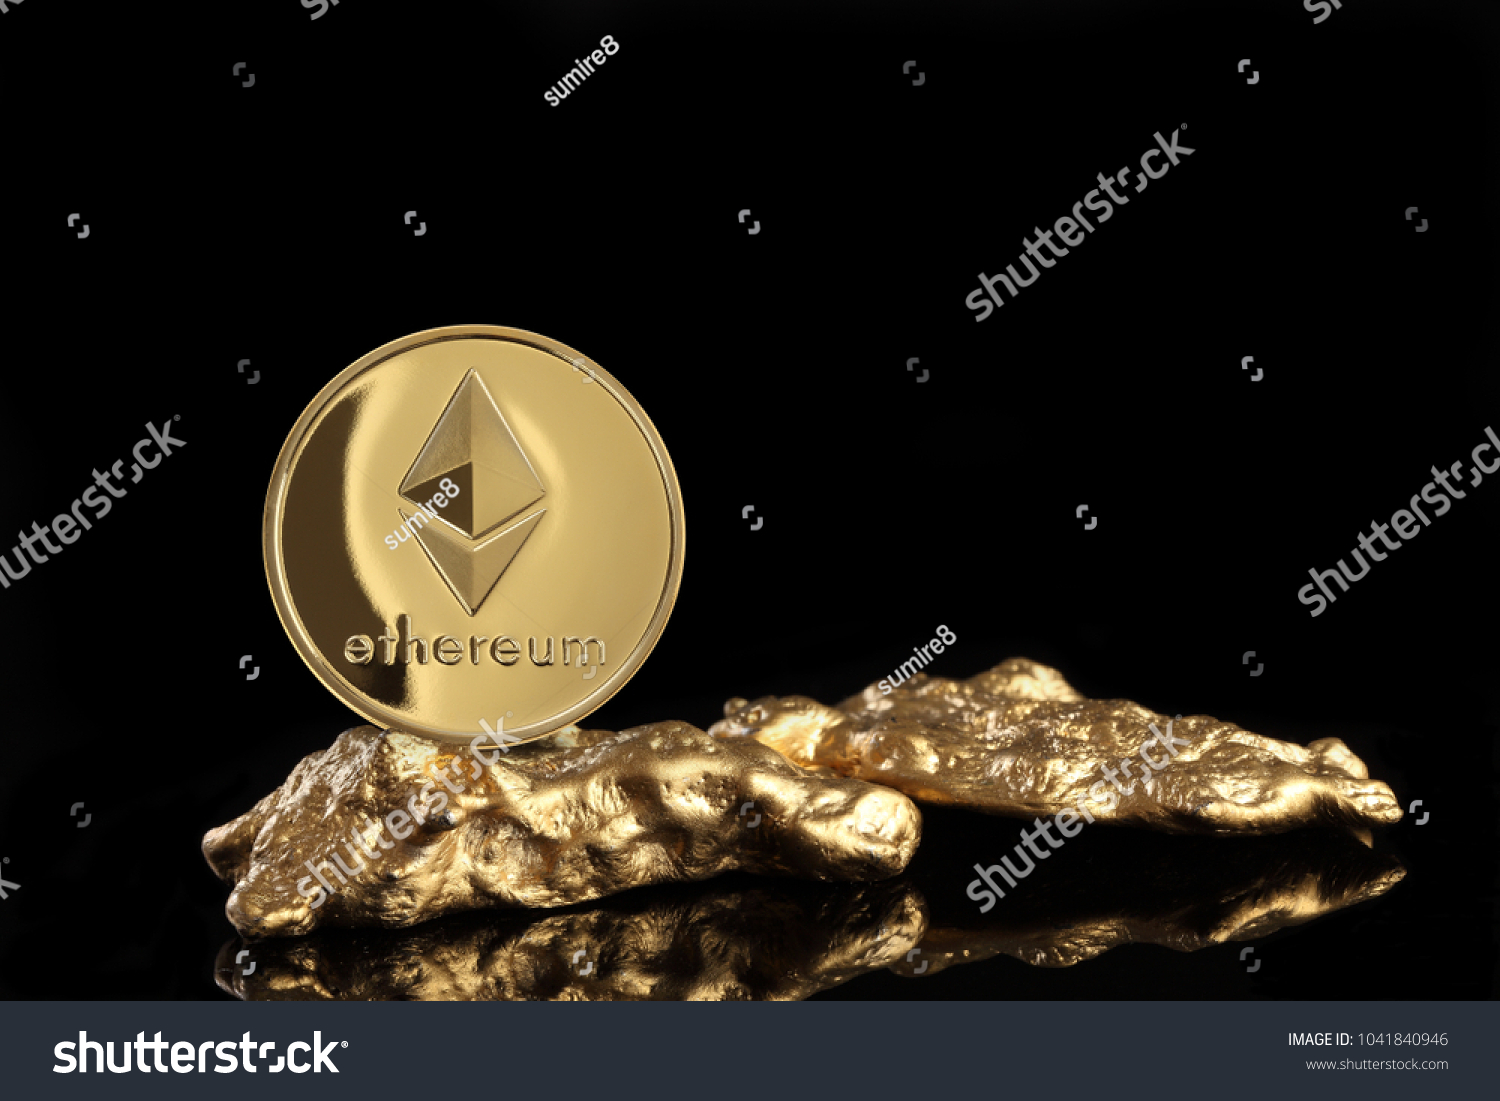 Goldnugget cryptocurrency how to buy bitcoin and ethereum ccuart Image collections